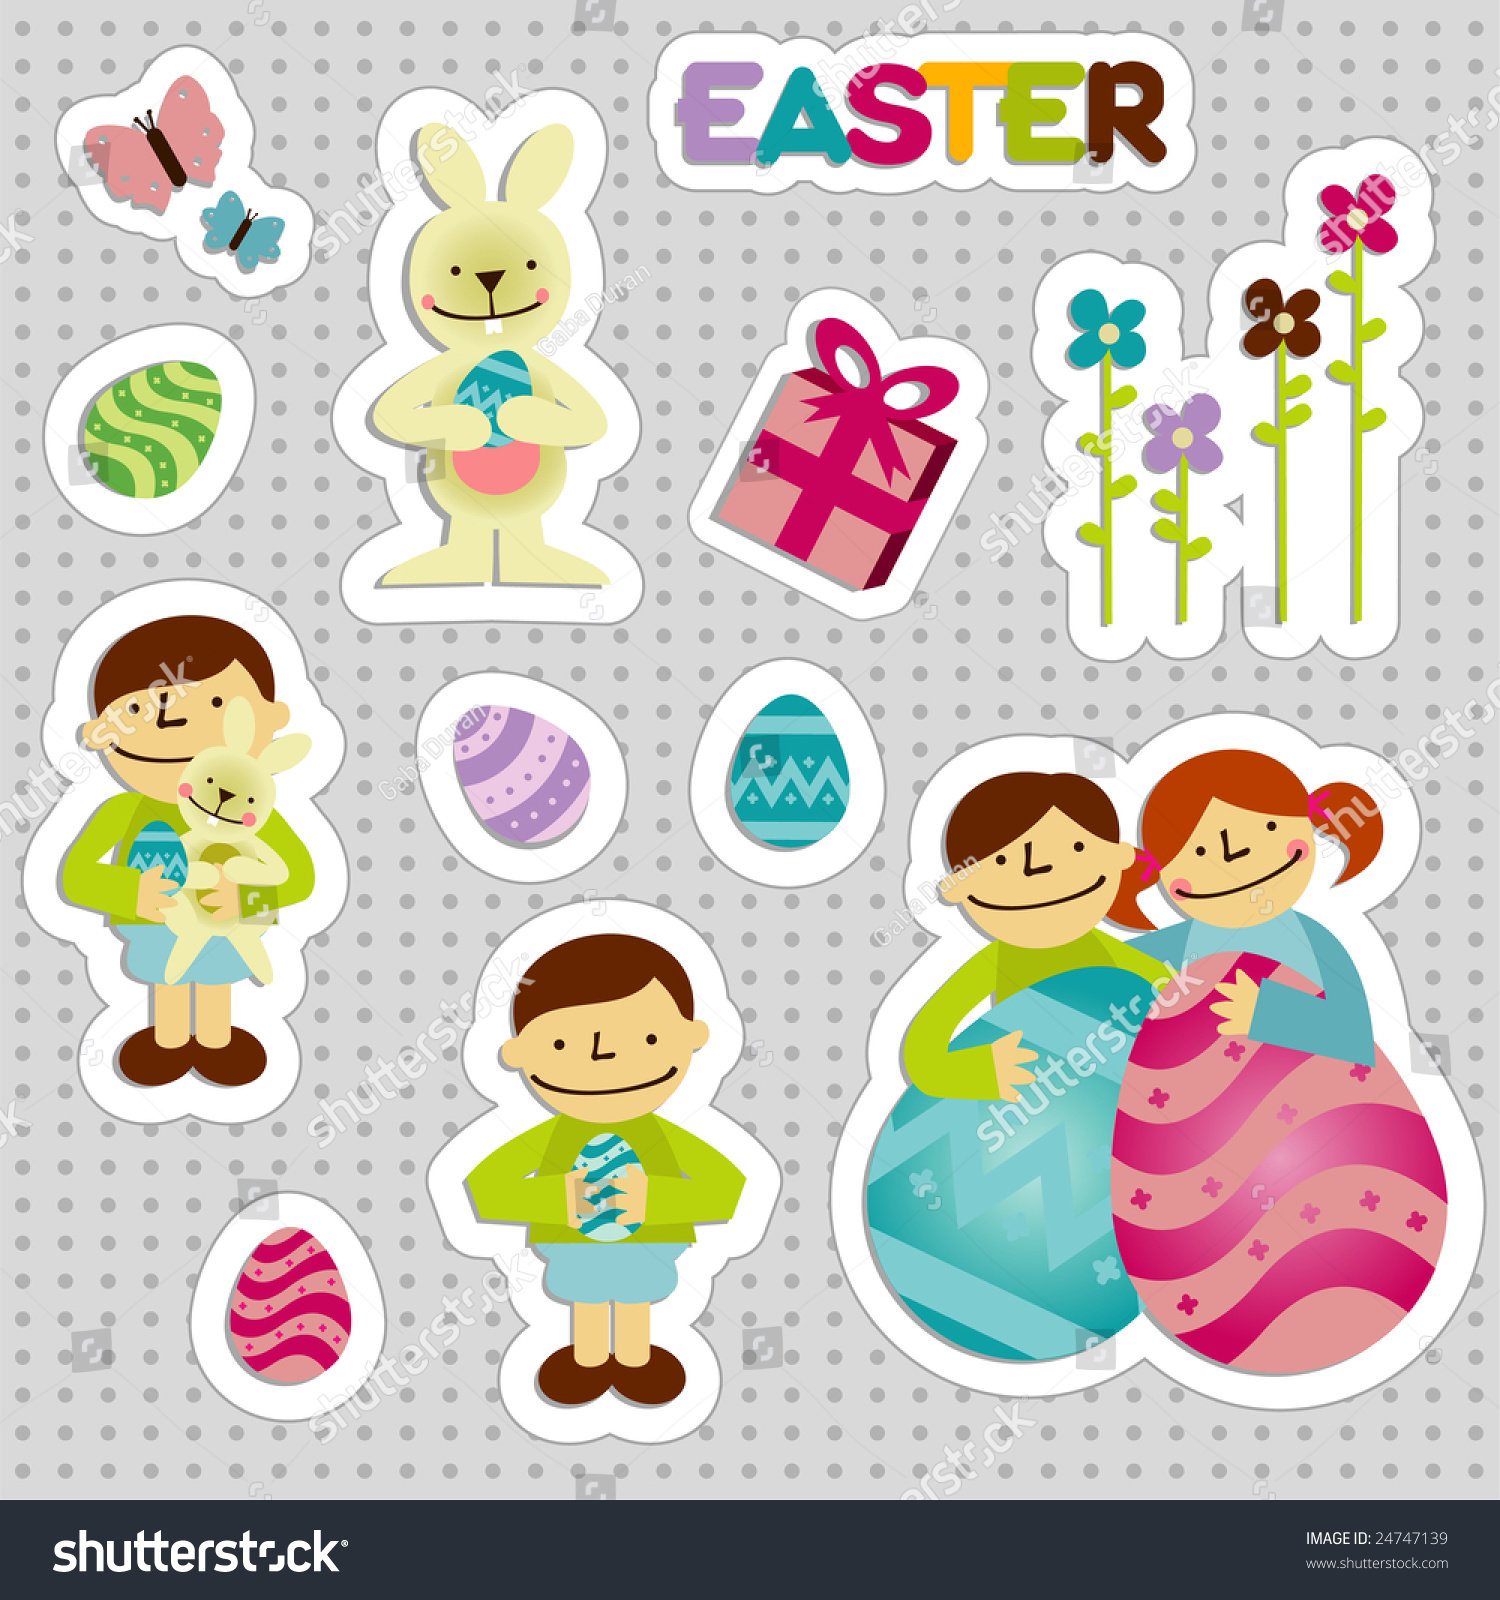 Set Of Easter Stickers With Elements Like A Girl, A Boy, Chickens ...